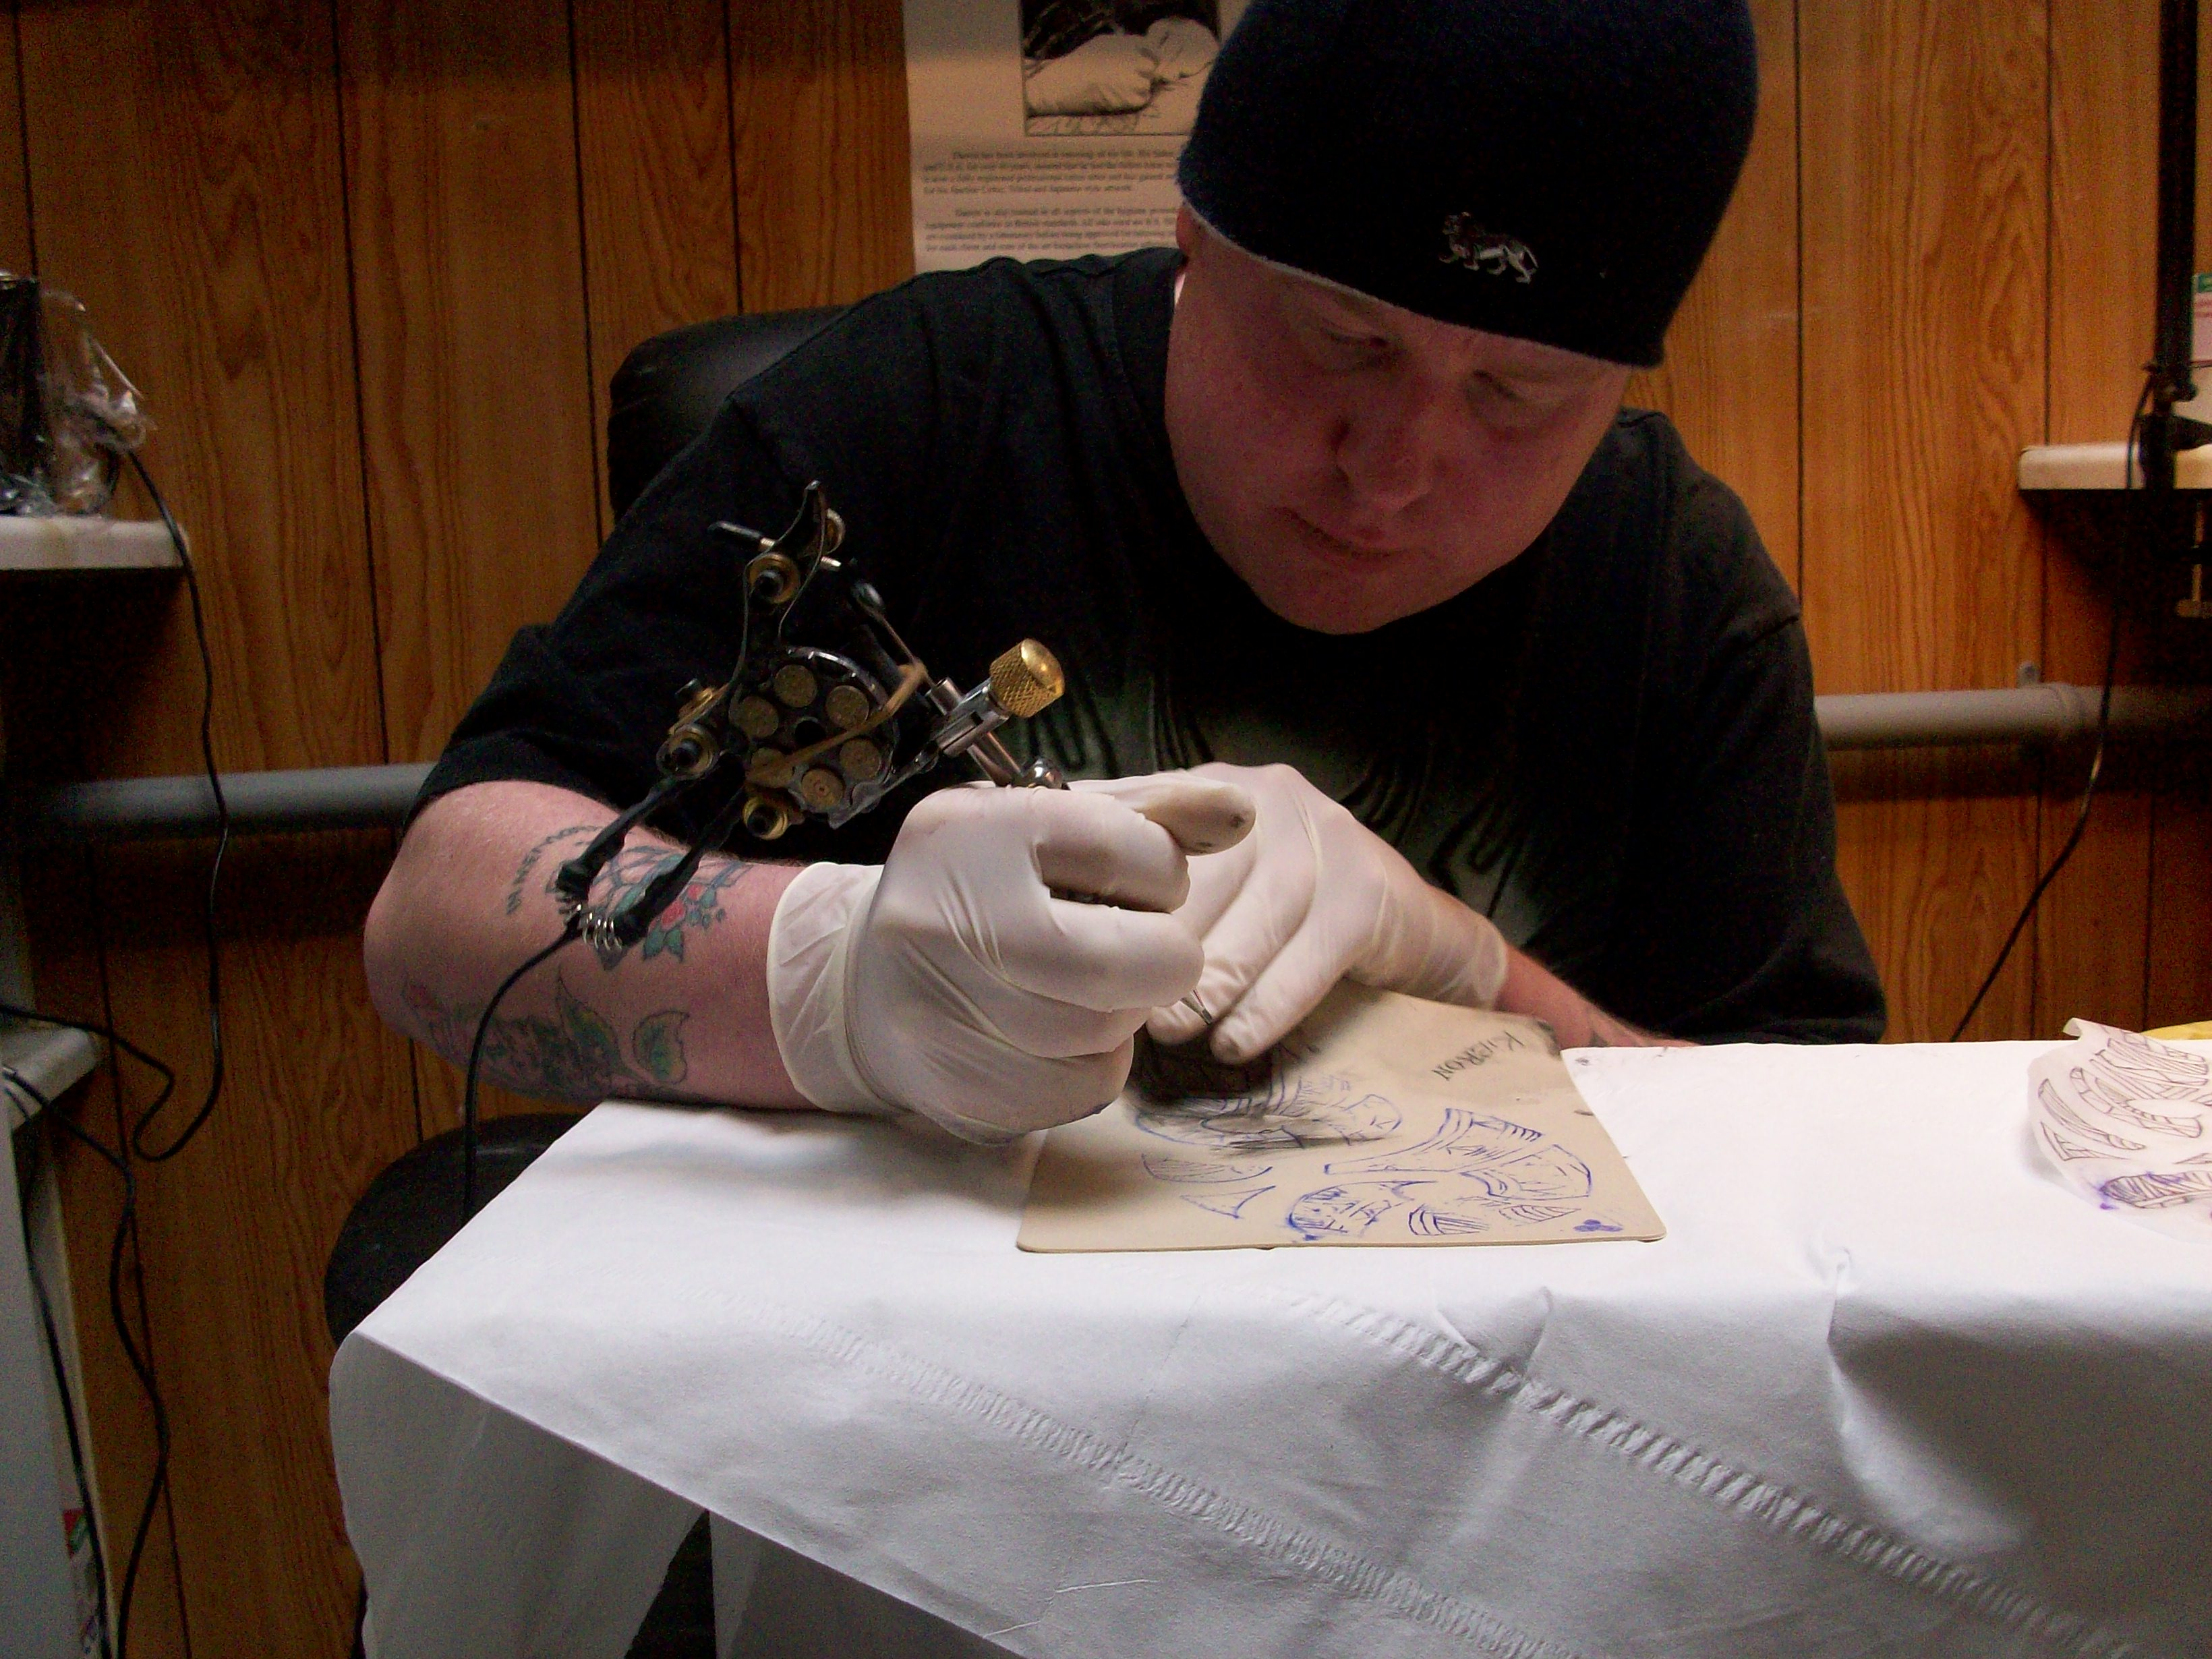 Tattoo training by professional artist in tamworth studio for Tattoo artist education courses